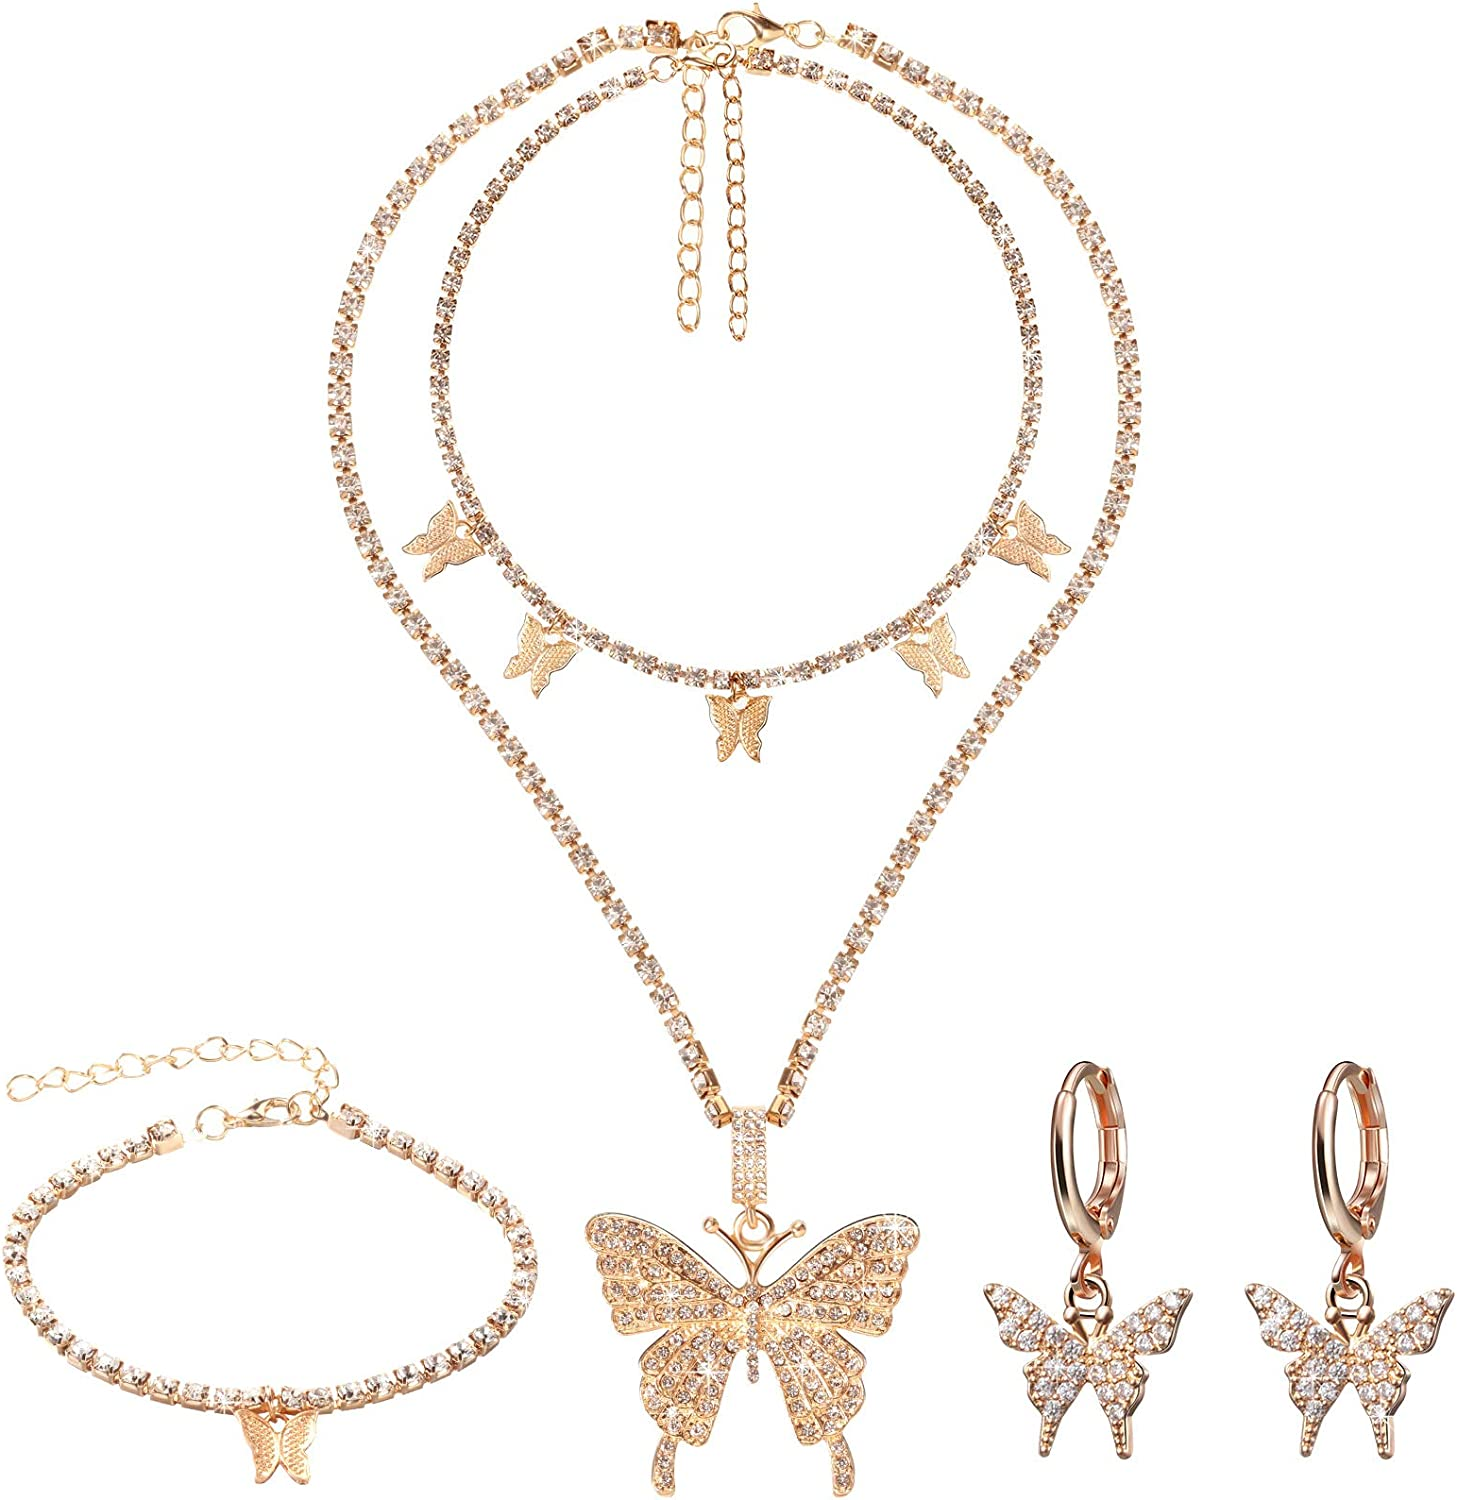 Hicarer Big Butterfly Pendant Necklace Rhinestone Chain Shiny Crystal Choker Pendant Collar Necklace and Butterfly Bracelet Butterfly Earrings Jewelry for Women Girl (Gold)